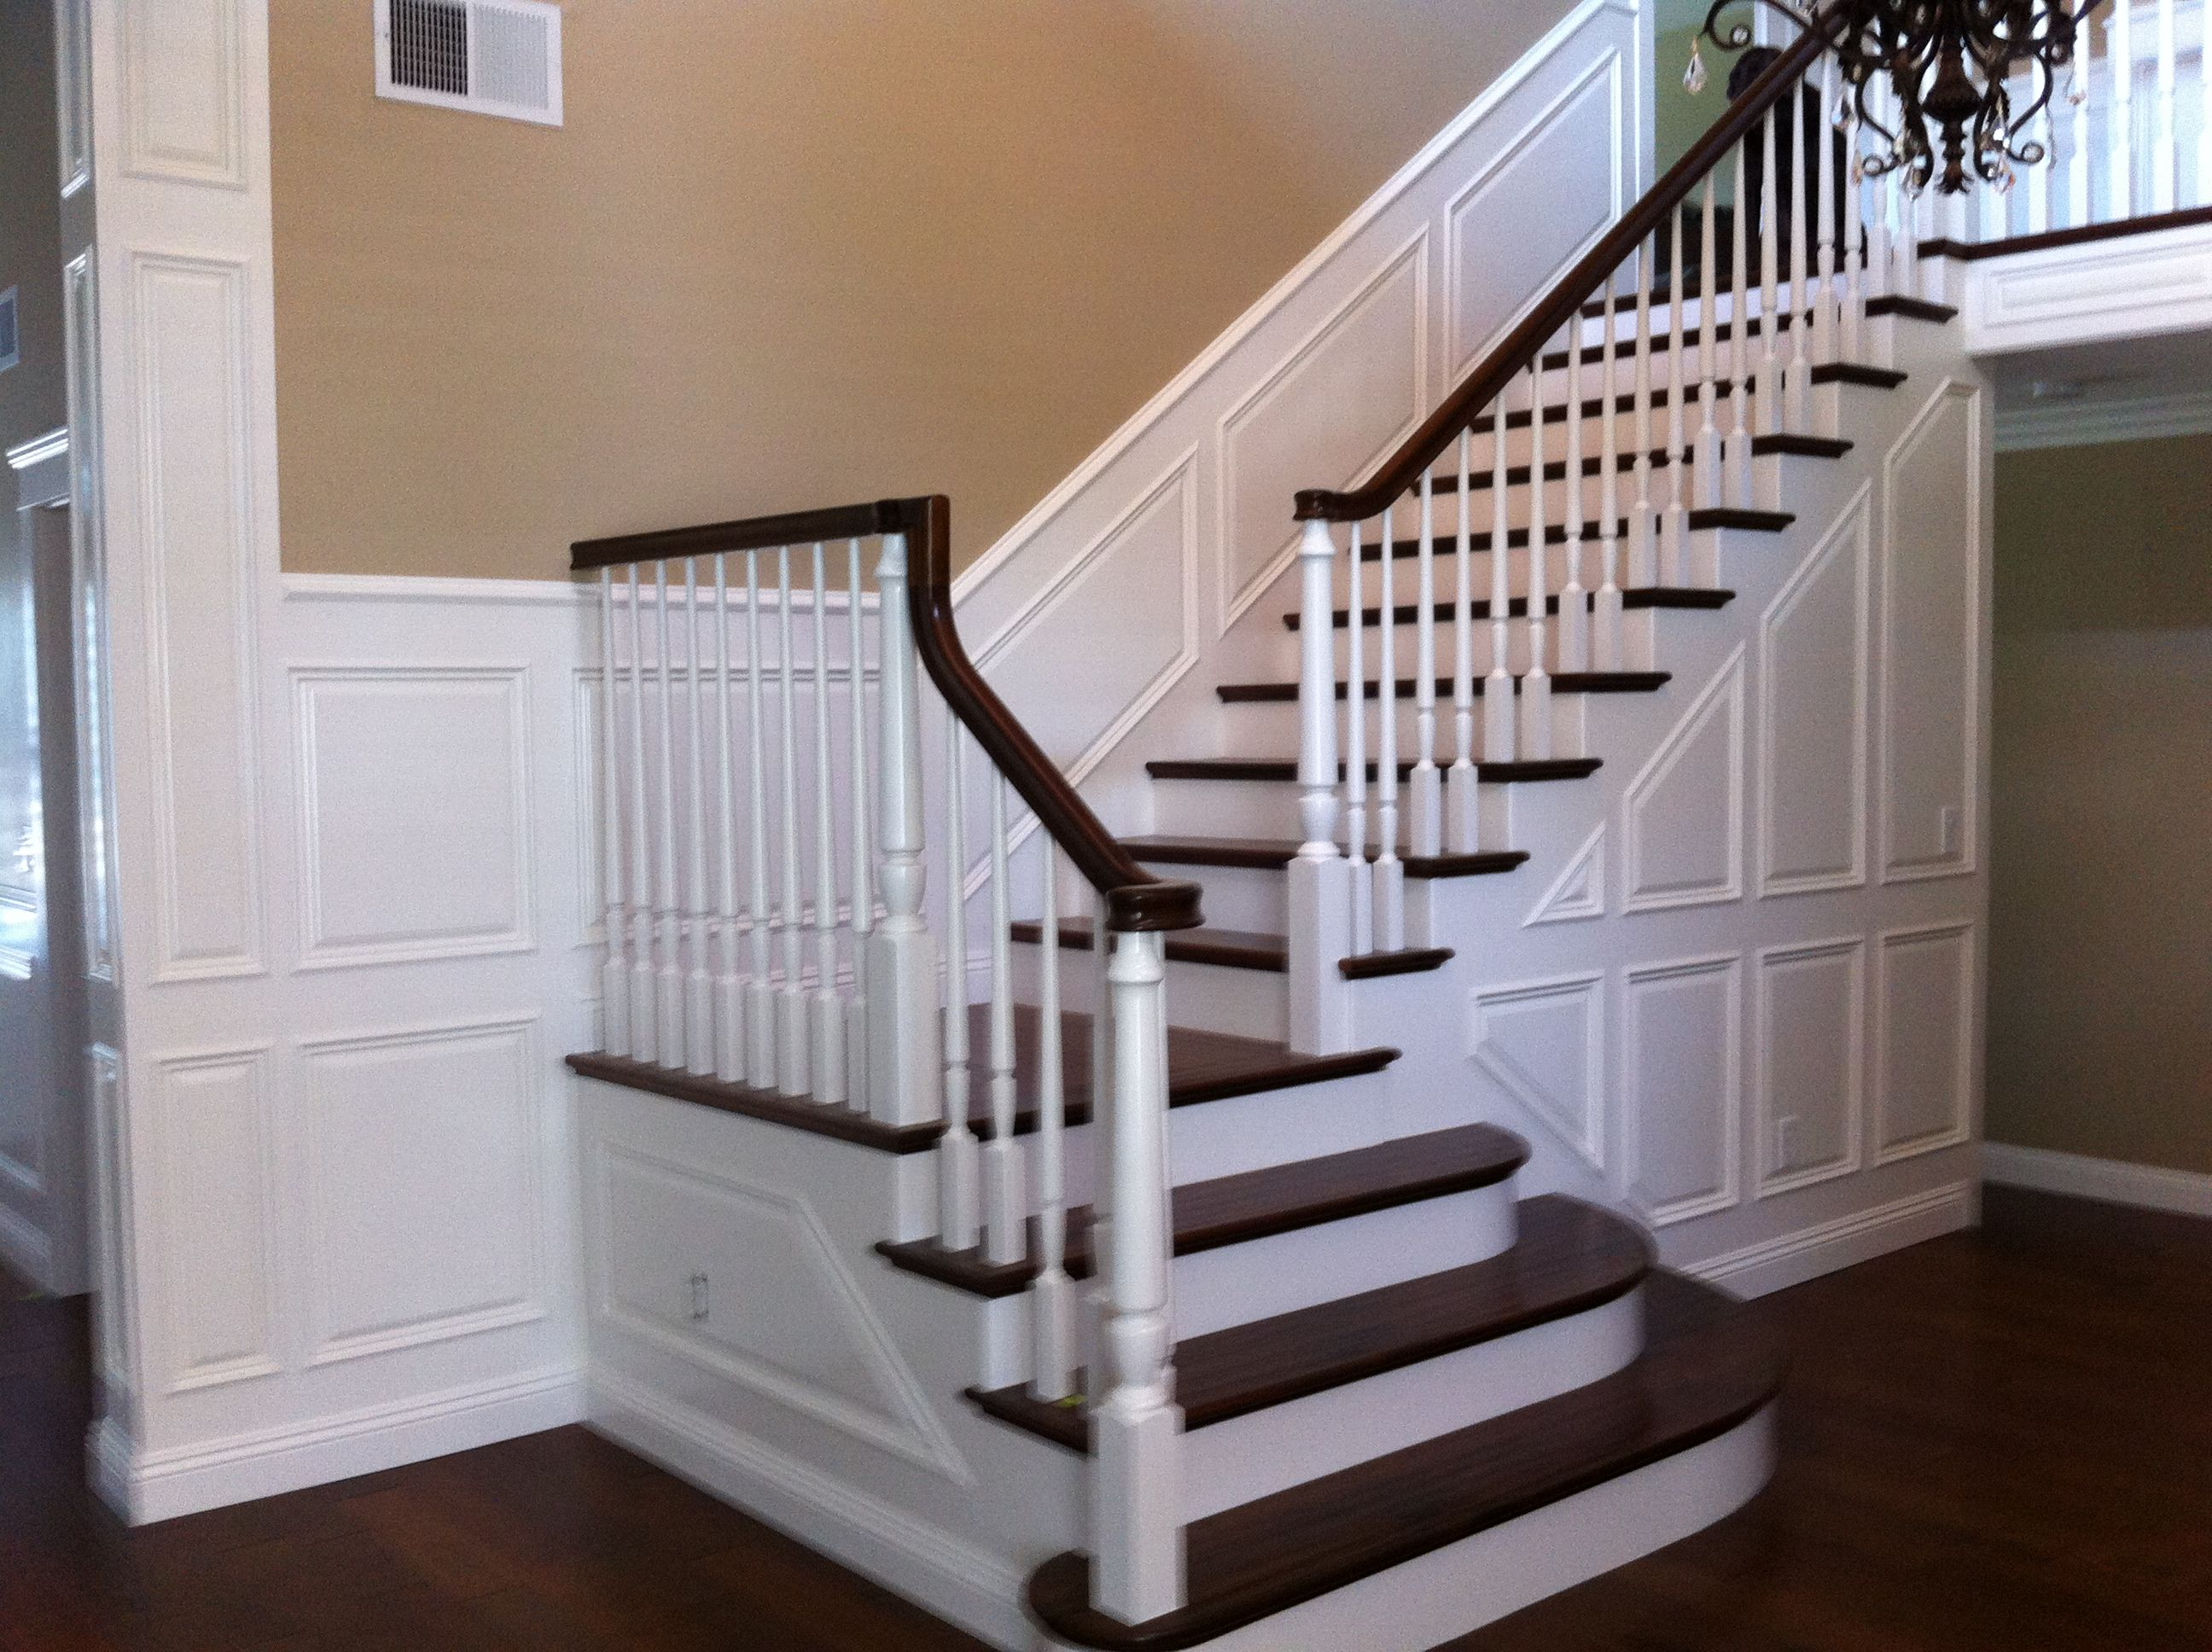 pictures of decorative trim on vaulted walls | Wainscoting ...